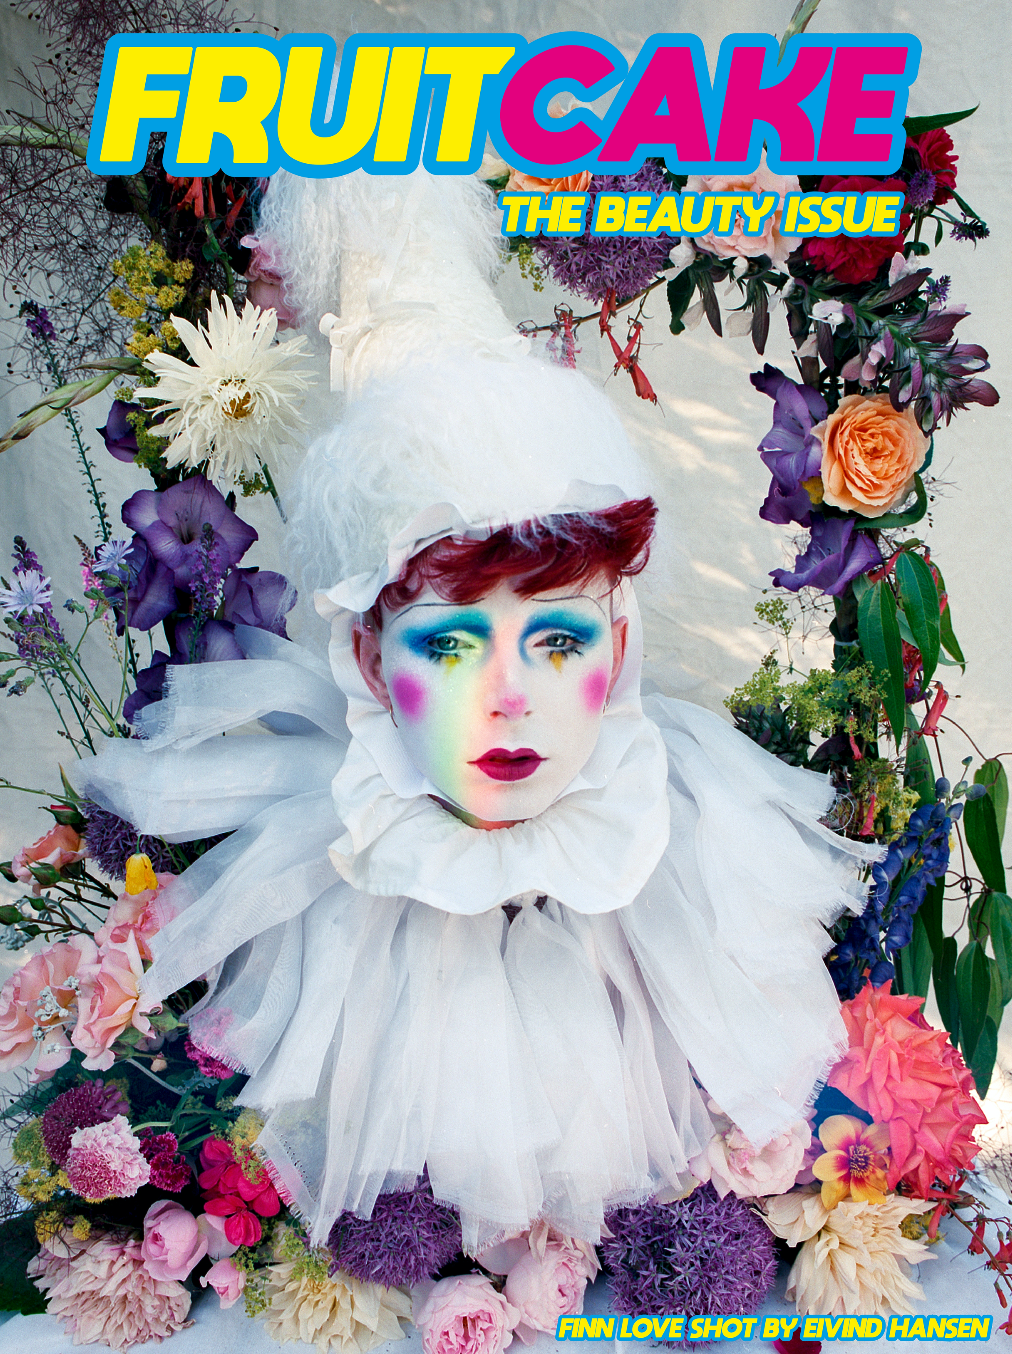 FRUITCAKE Magazine - The Beauty Issue PREORDER